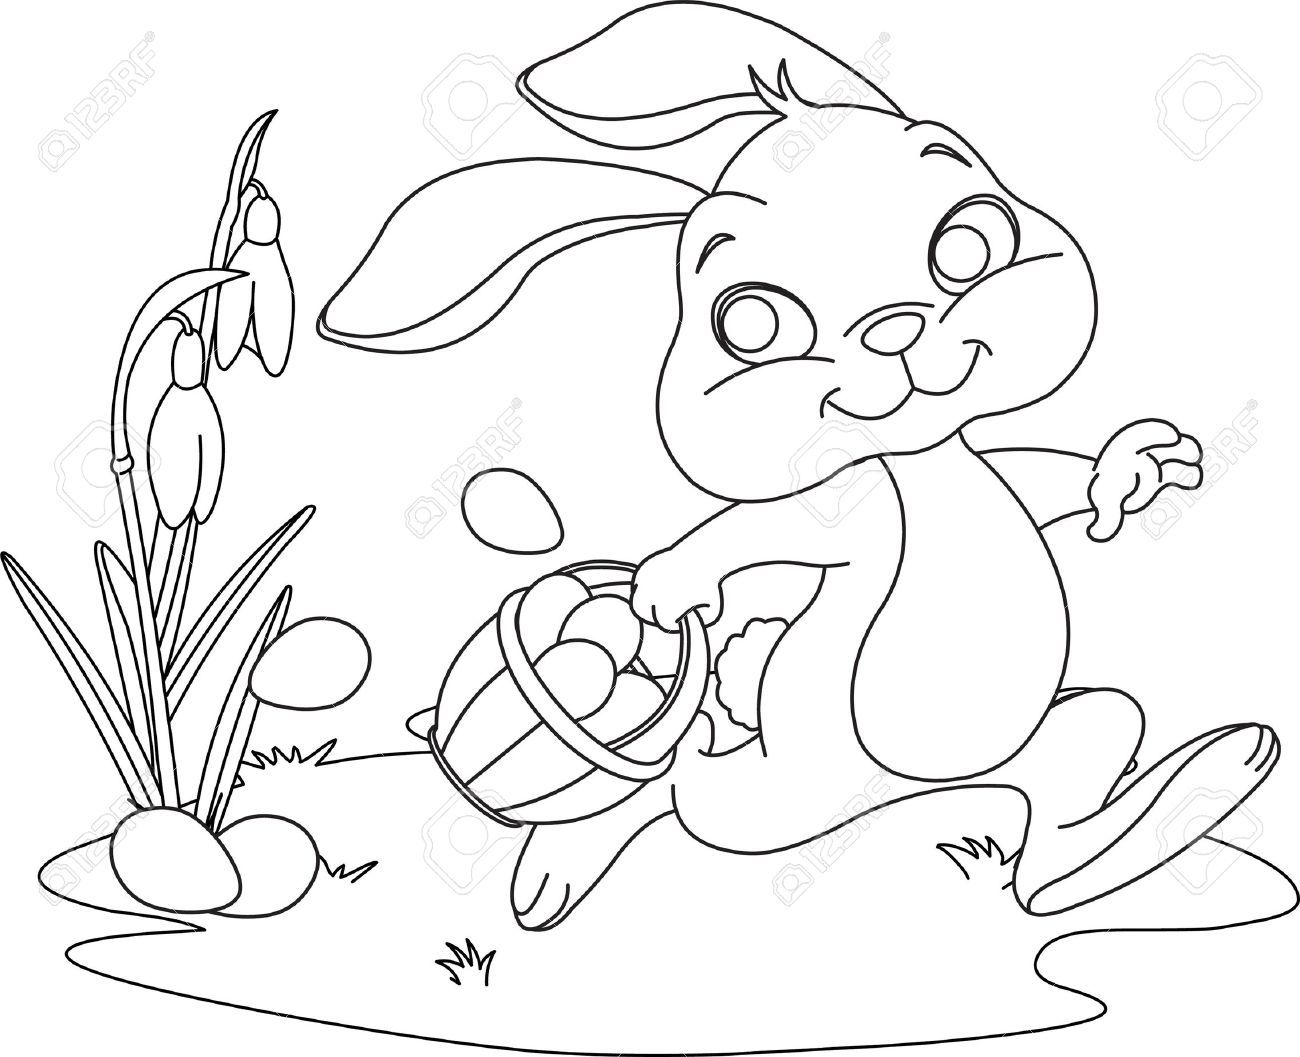 1300x1057 Free Printable Easter Egg Coloring Pages